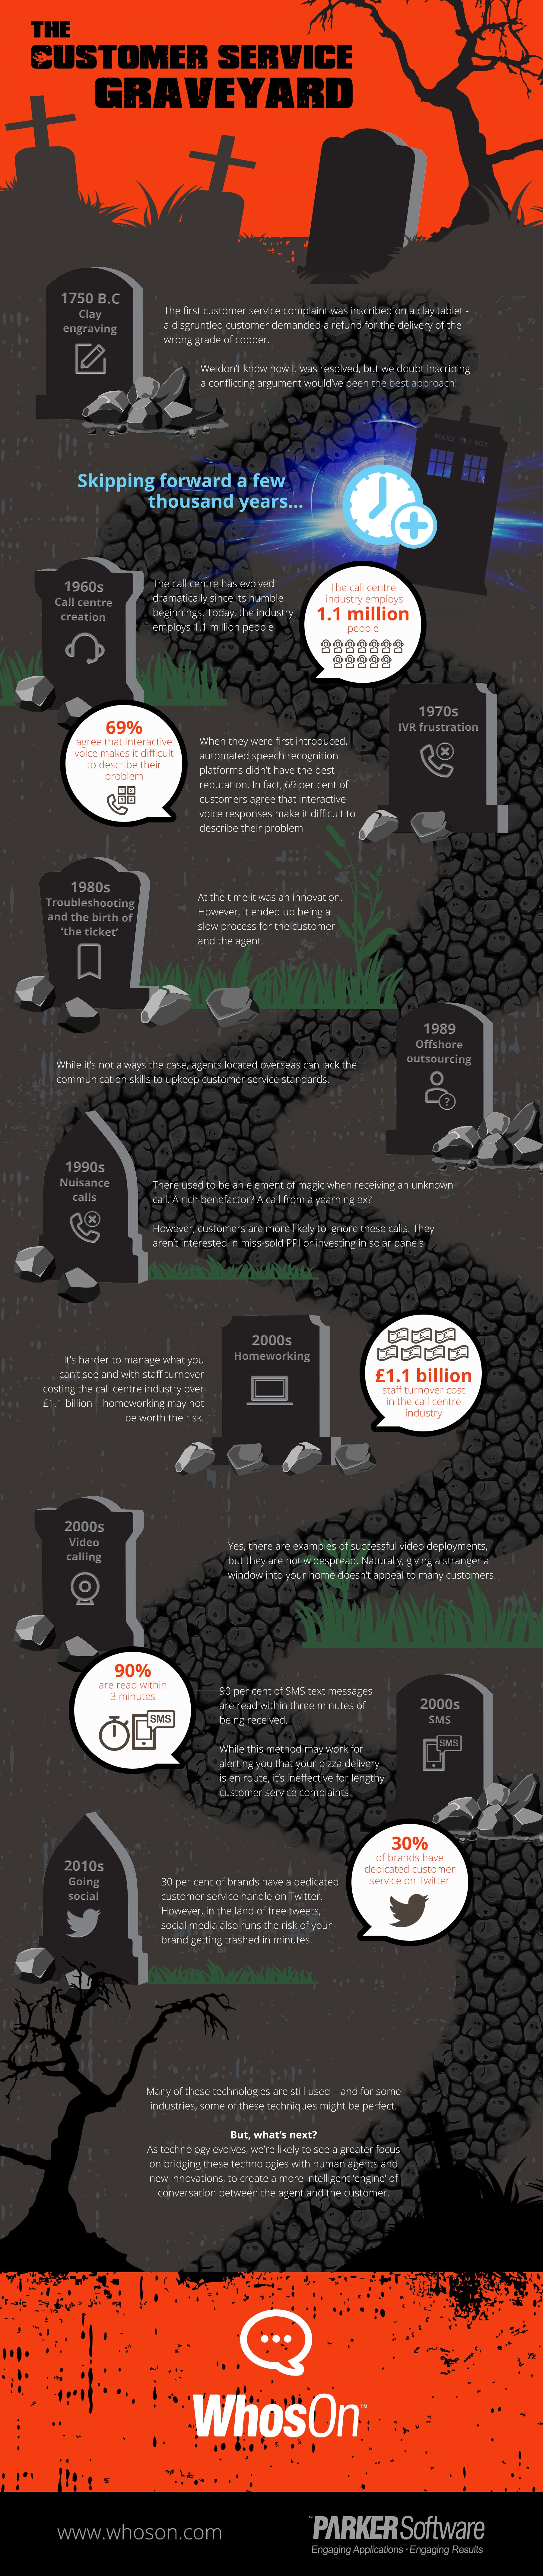 The Customer Service Graveyard [Infographic]